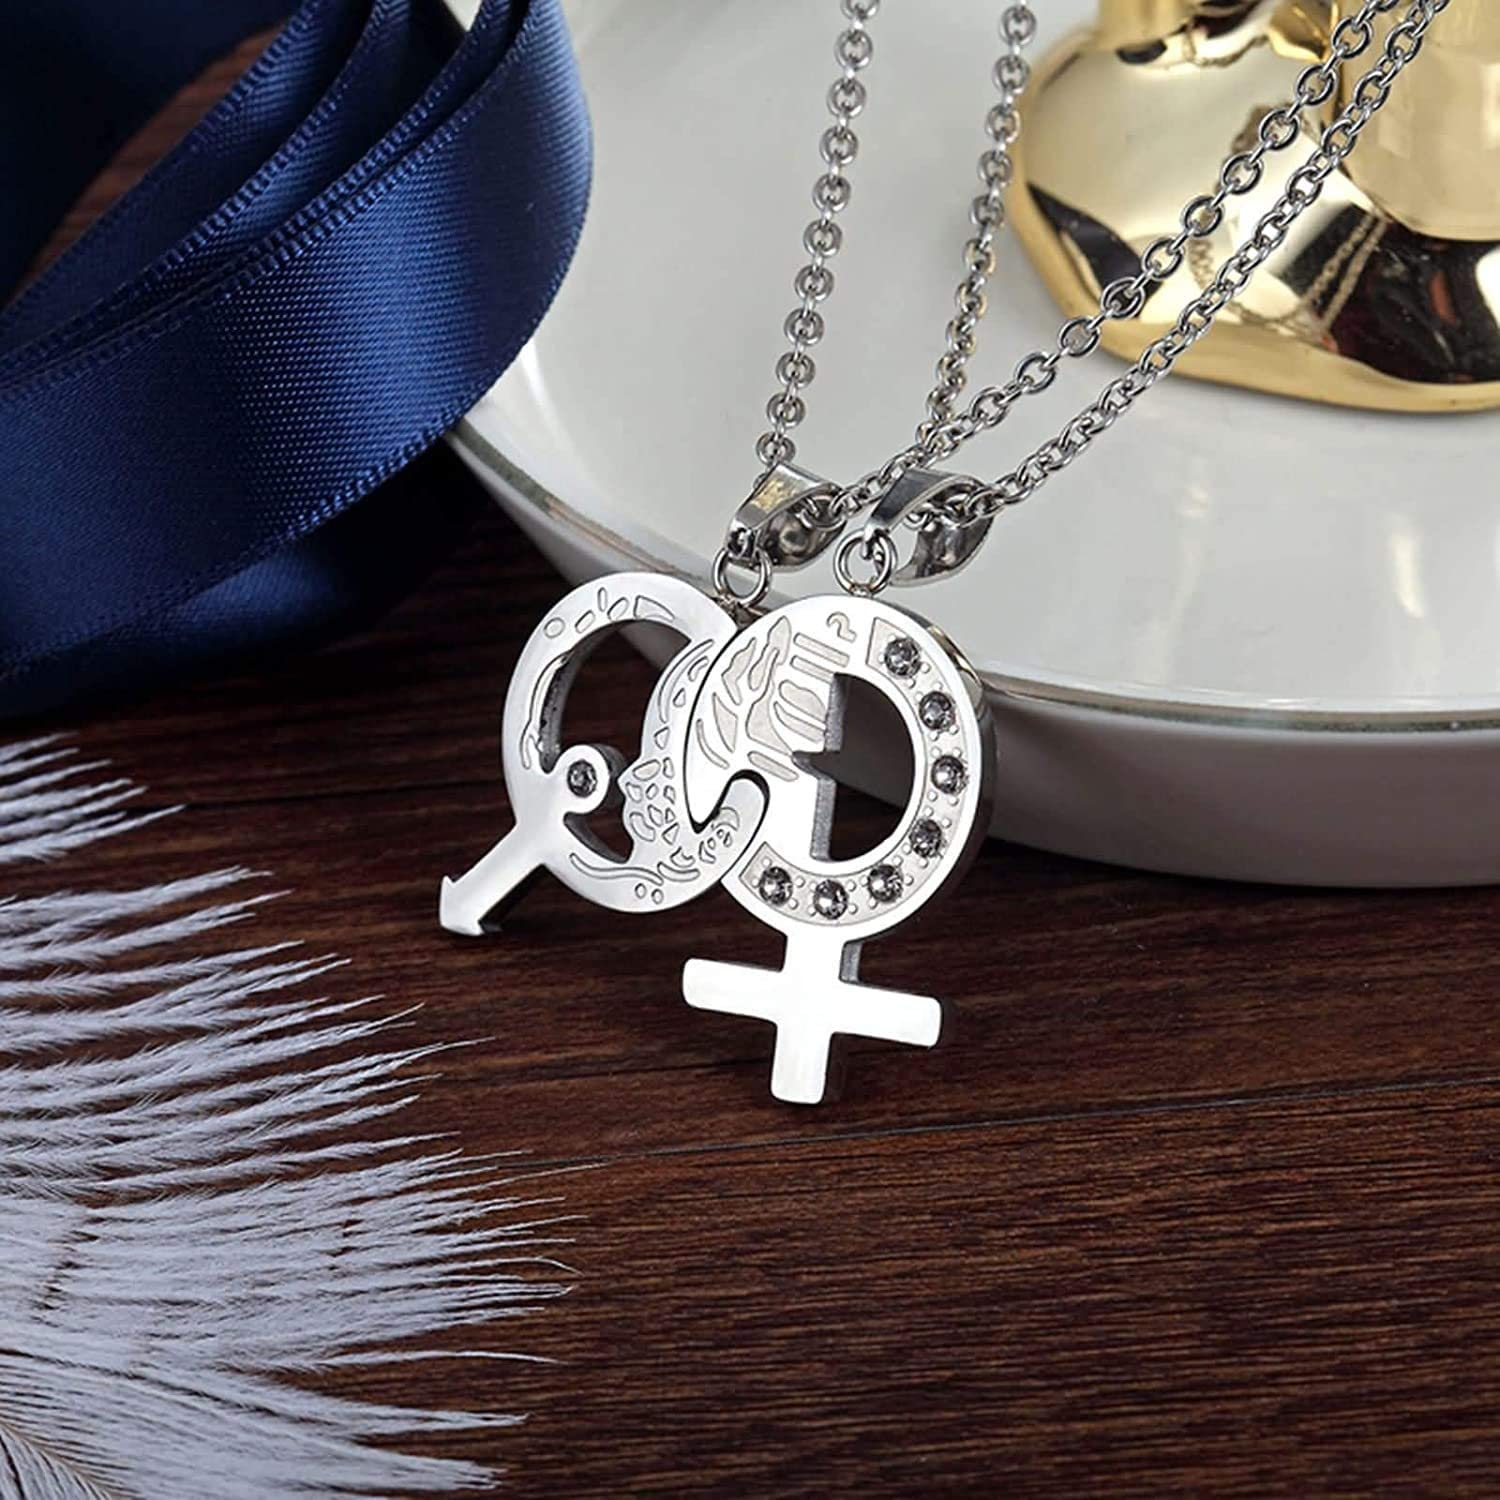 Mens Womens Stainless Steel Puzzle Matching Pendant Necklace with Cubic CZ 60CM//24IN LOPEZ KENT 2 Pieces Set Couples Necklace